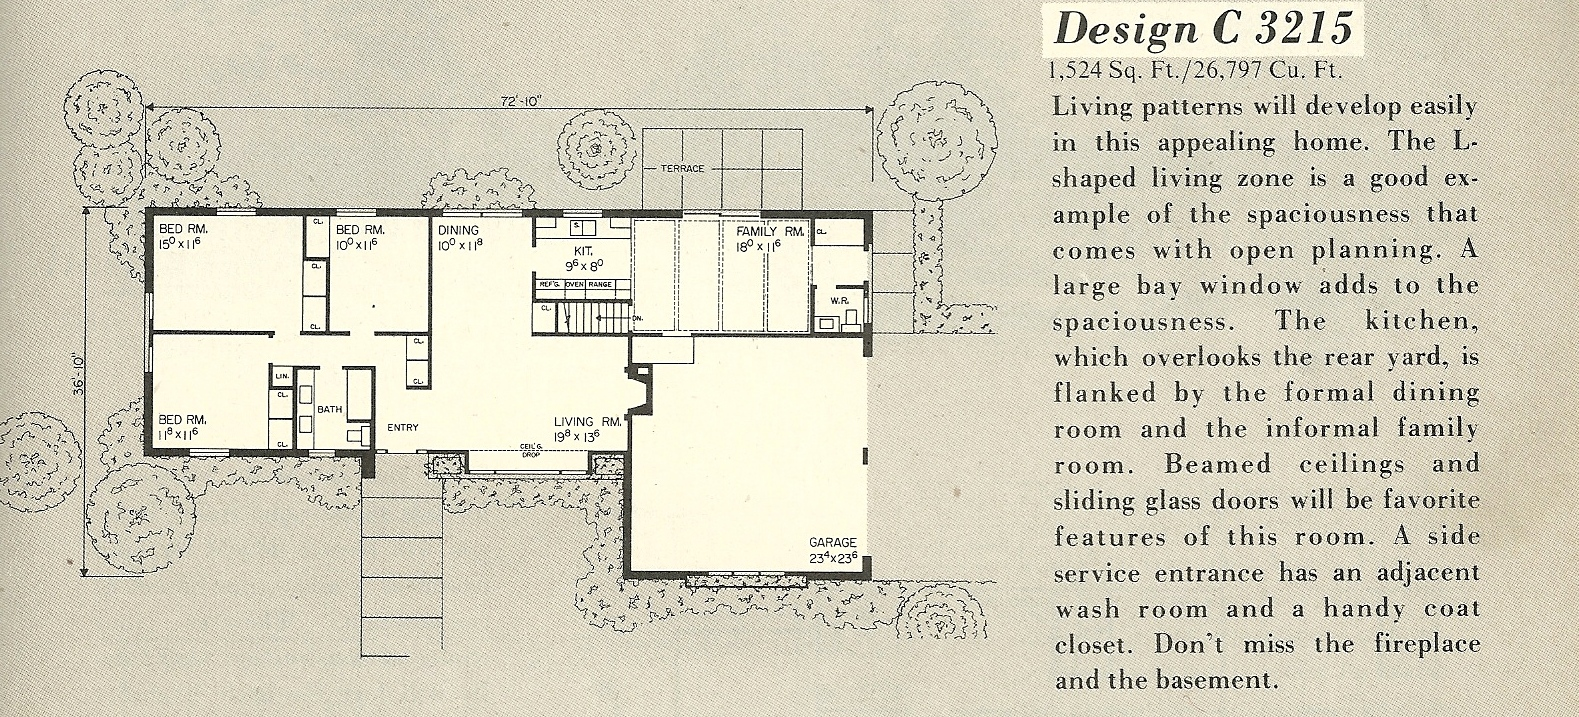 vintage house plans 3215a antique alter ego